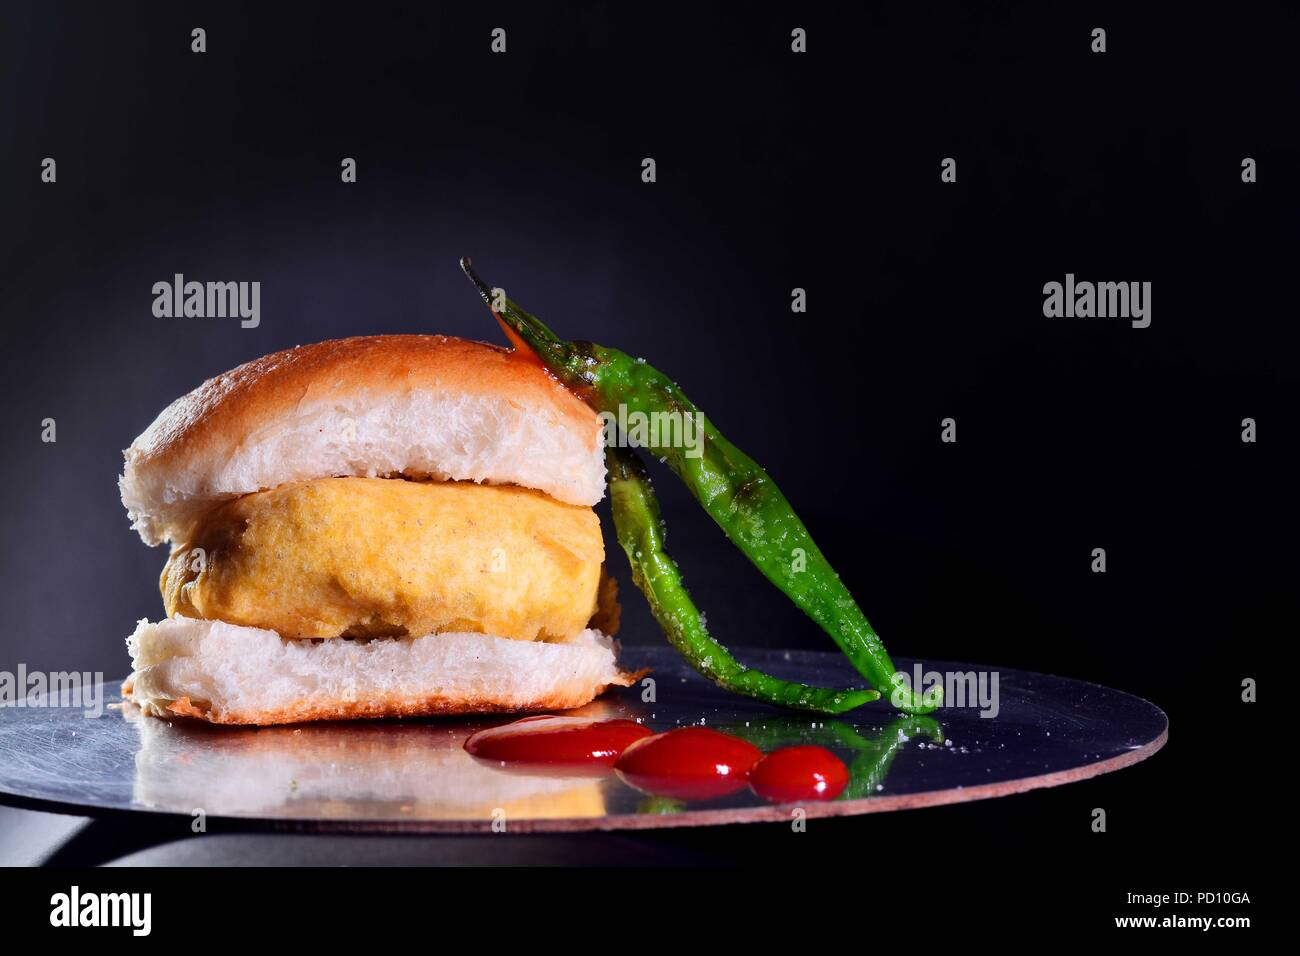 Vada paav and chilly - Stock Image